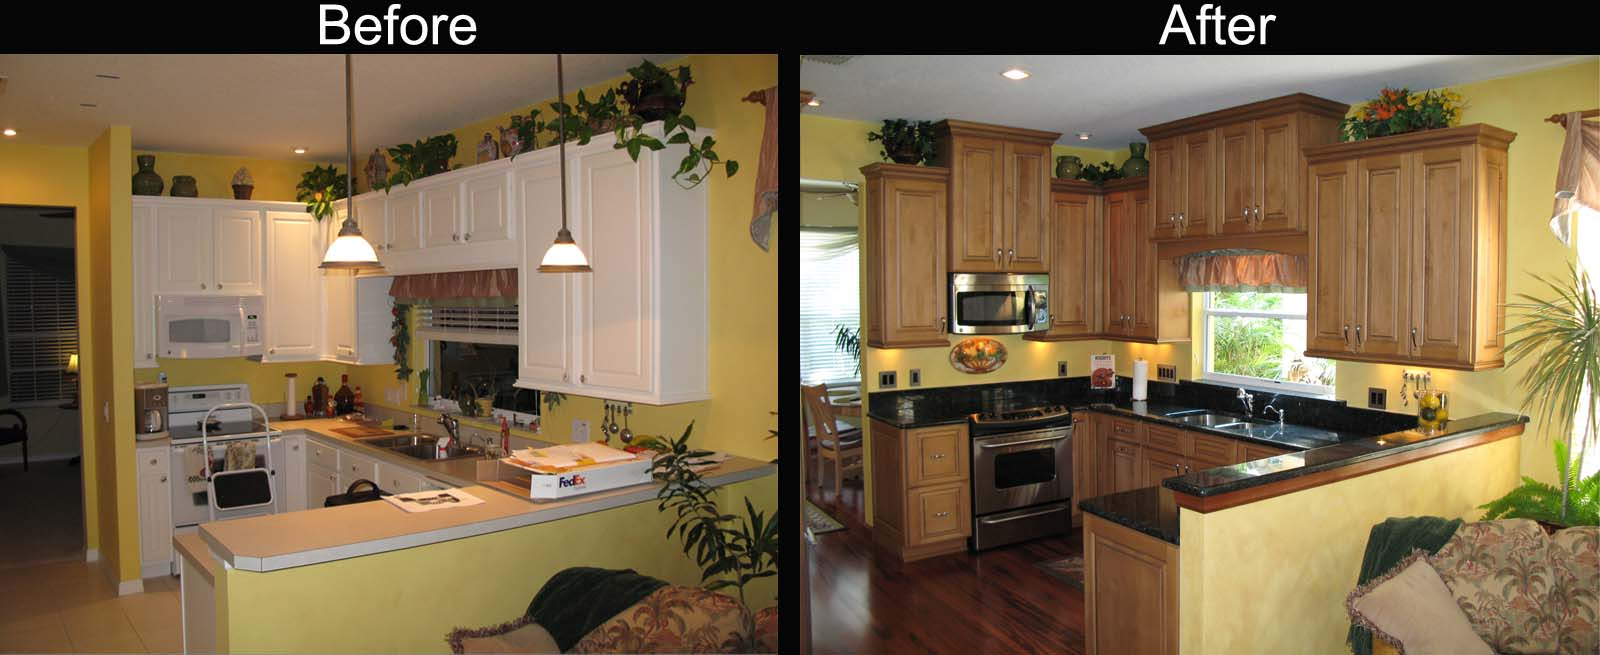 Kitchen decor kitchen remodel before and after for Kitchen ideas renovation